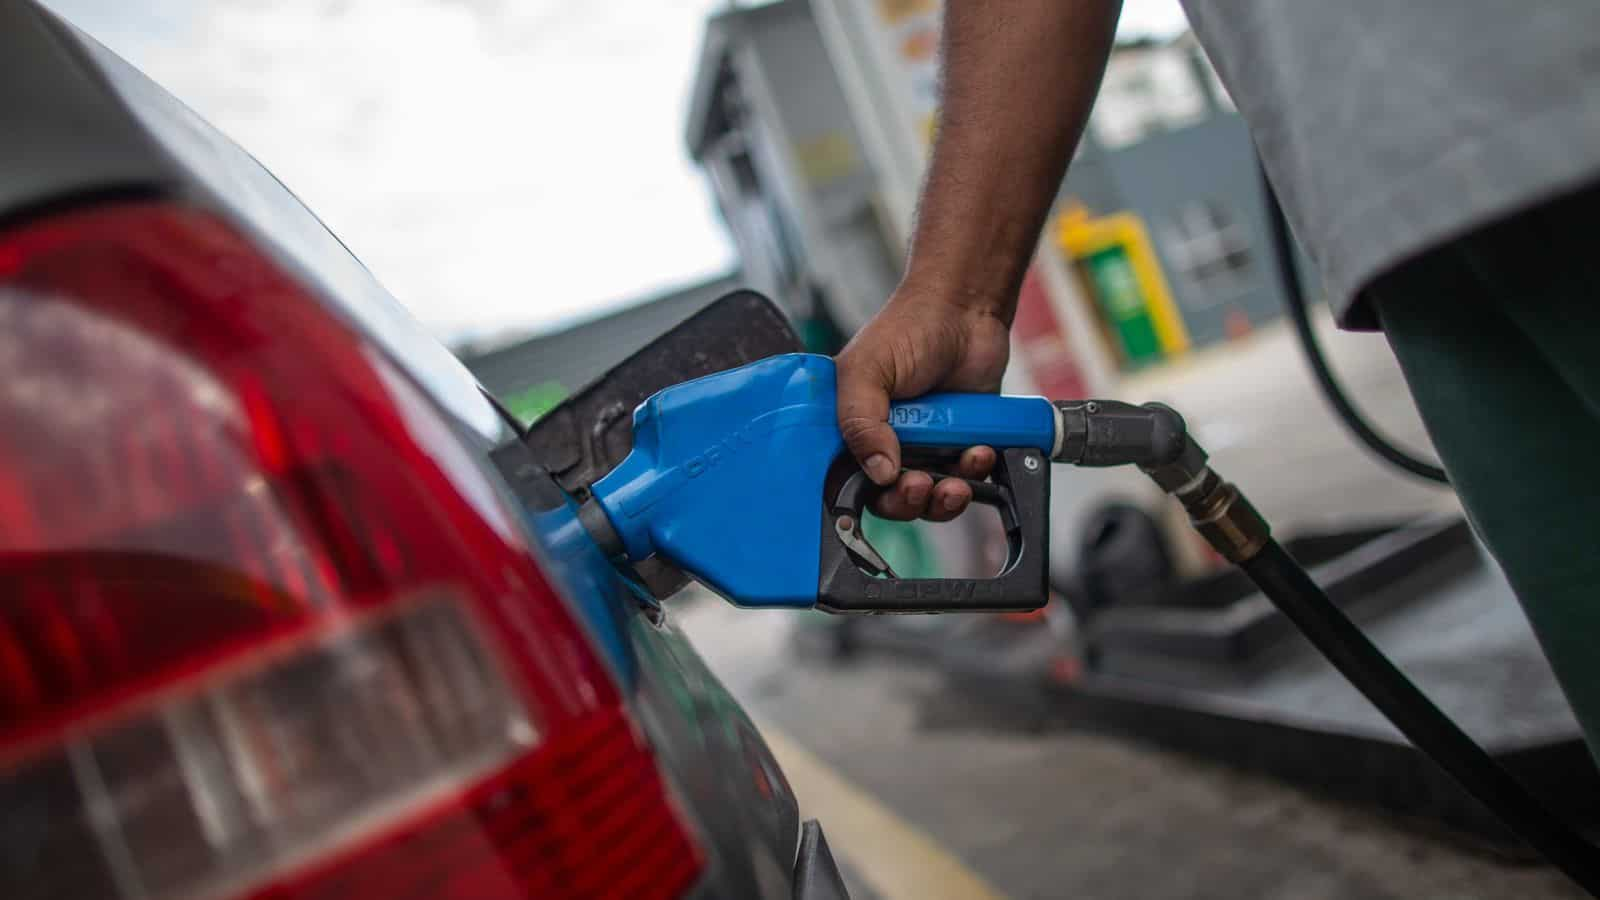 Petrol, diesel prices in Delhi hiked again. Check revised rates here